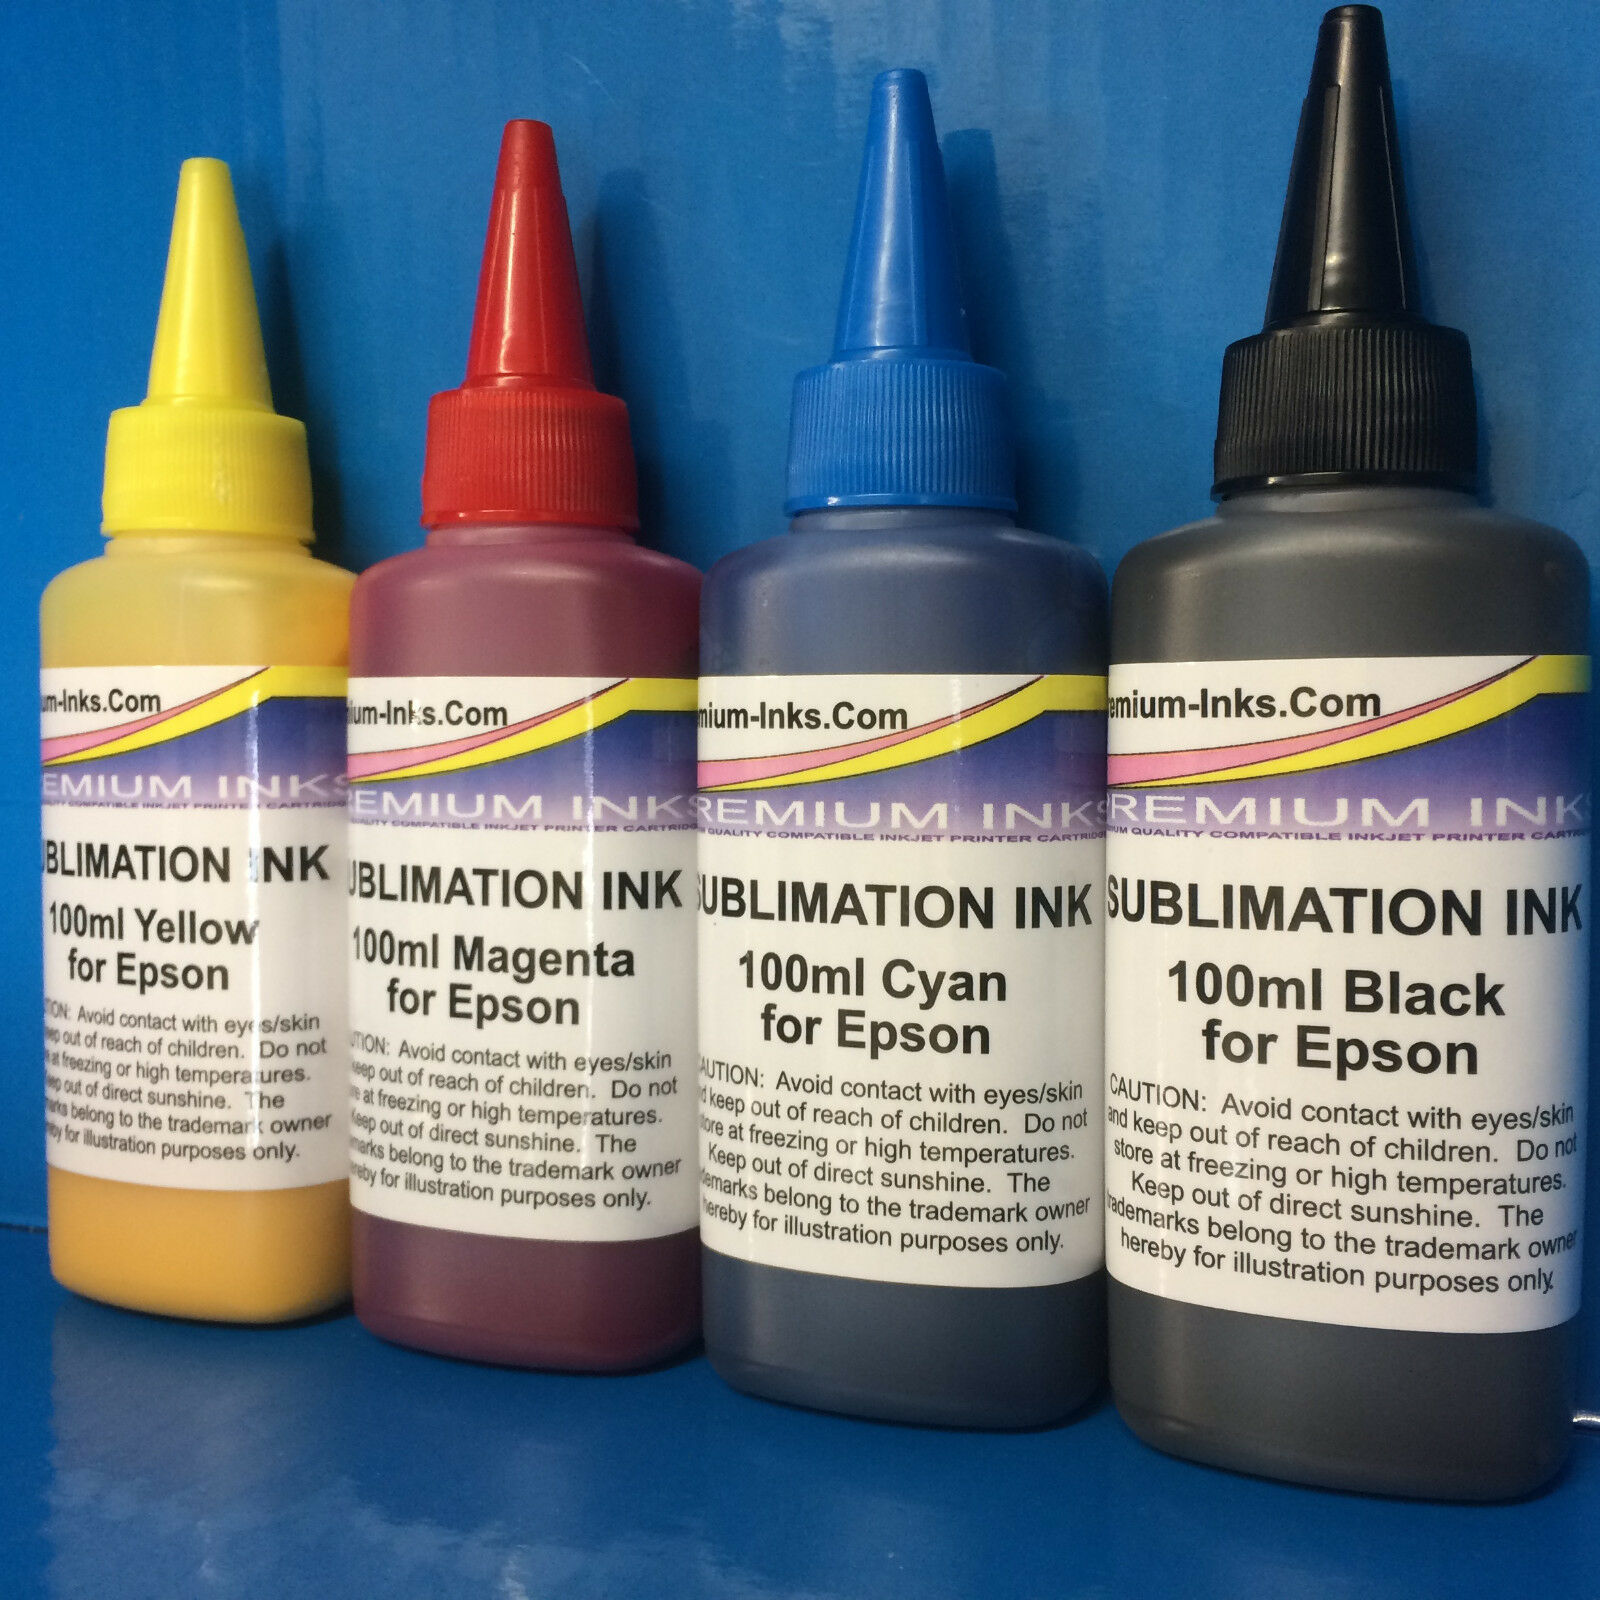 400ml Dye Sublimation Ink for Epson Workforce WF 7210dtw 7710 DWF 7720  7720dtwf